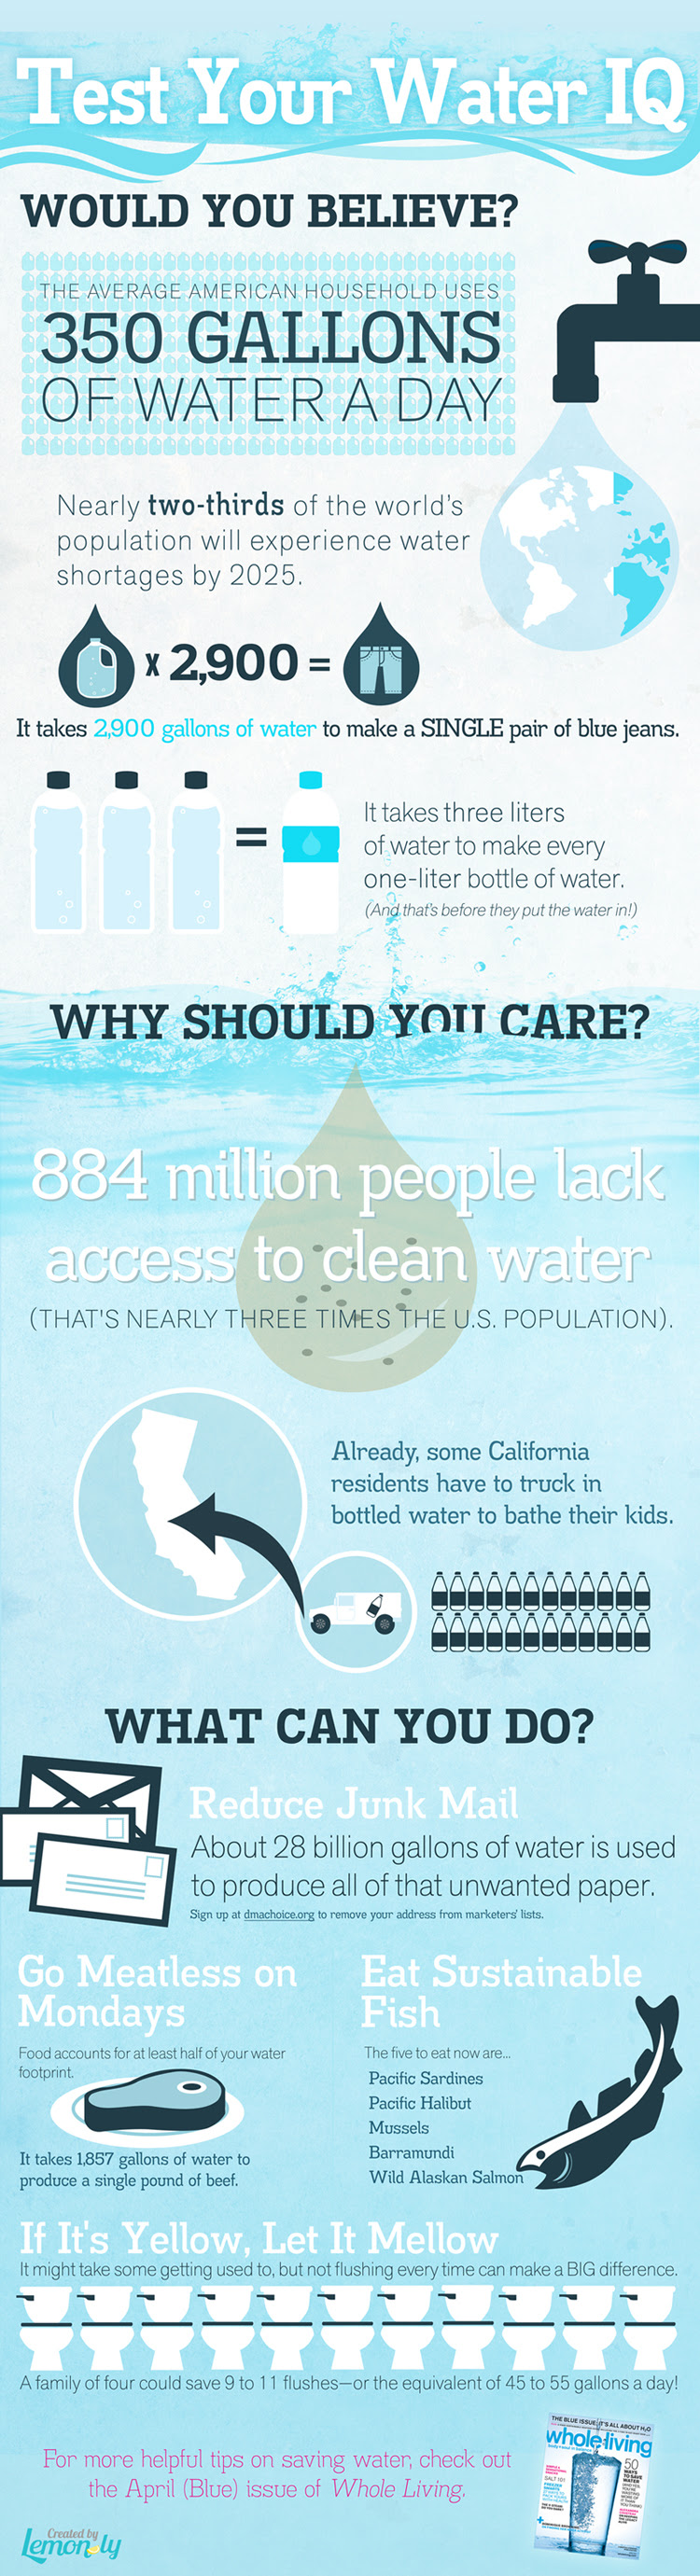 Test Your Water IQ: A World Water Day Infographic - Infographic Design by Lemonly